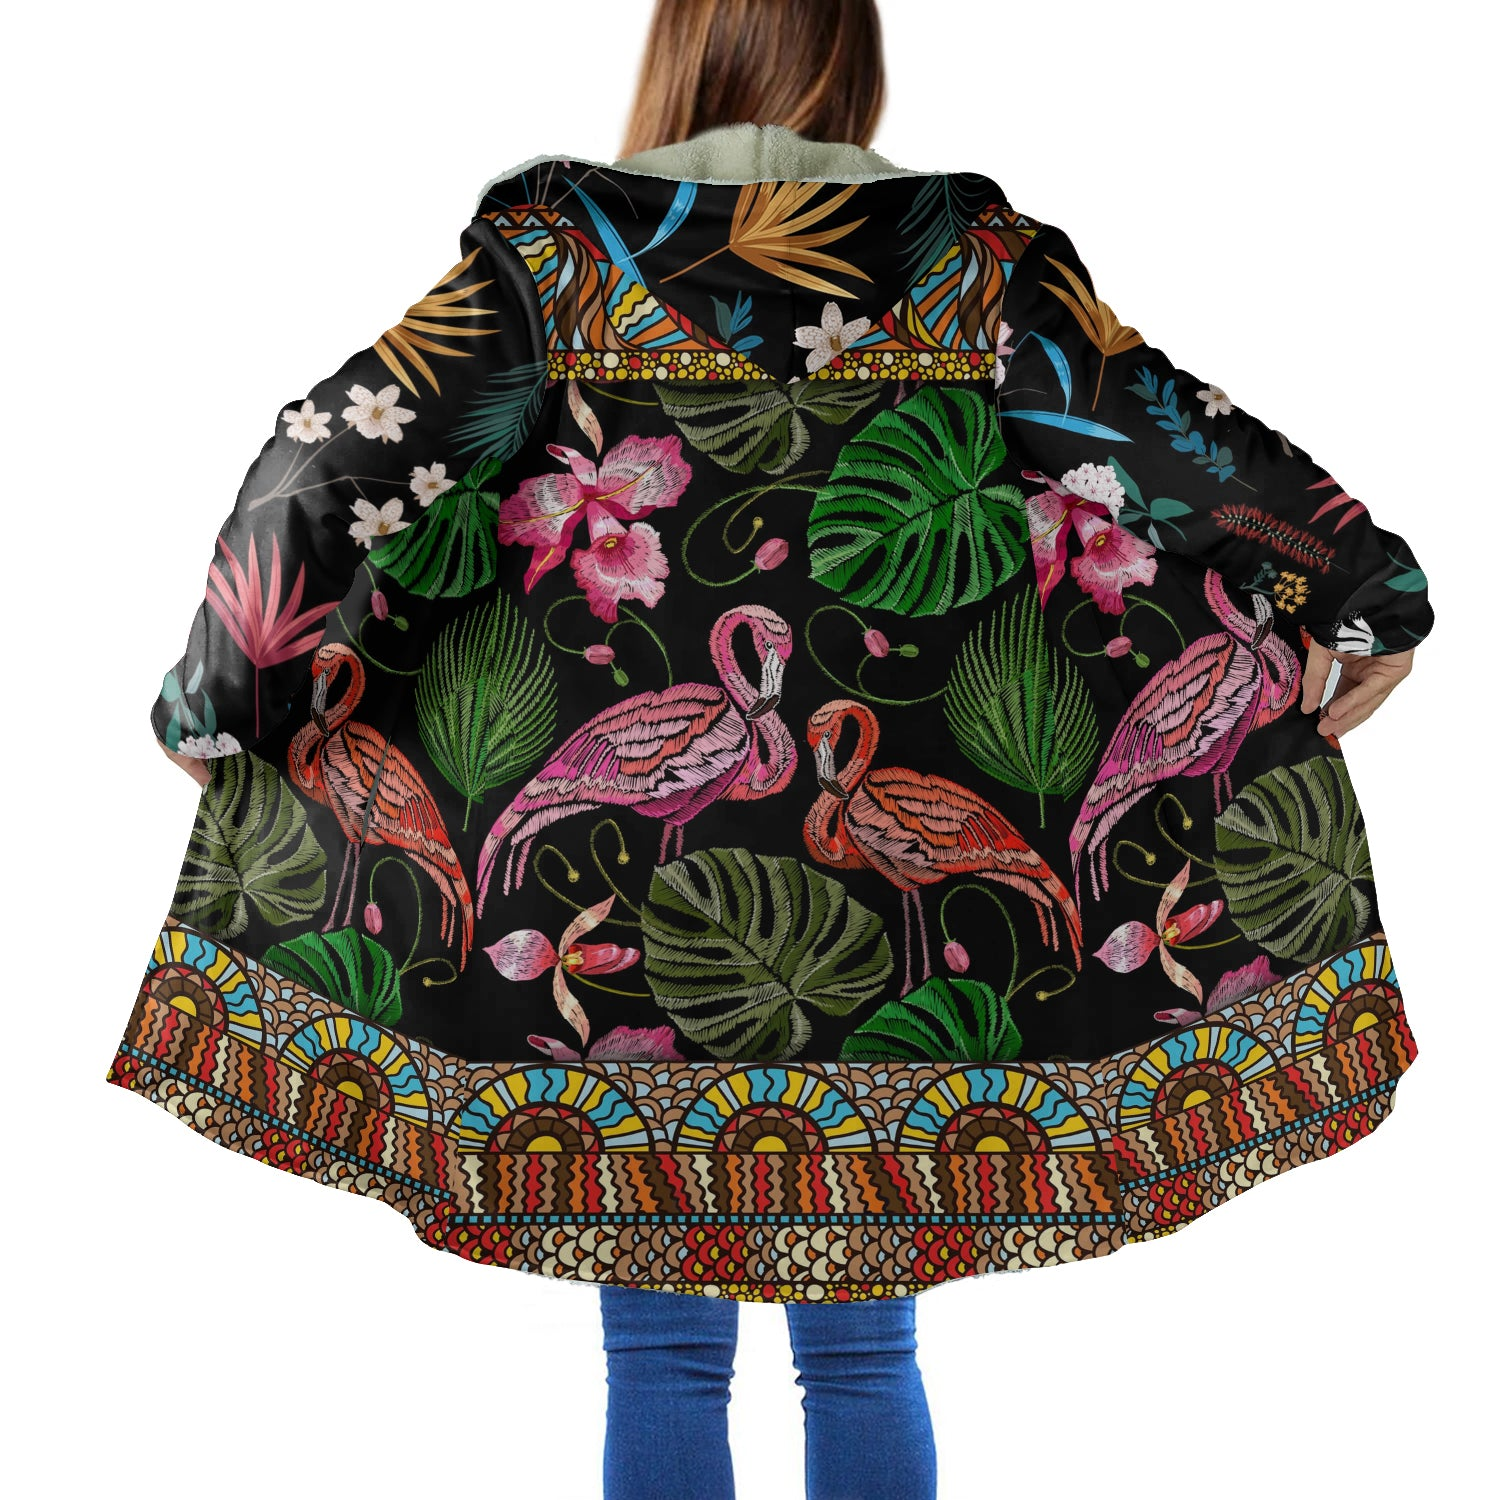 Flamingo 3D All Over Printed Hooded Coat for Men and Women dah171201